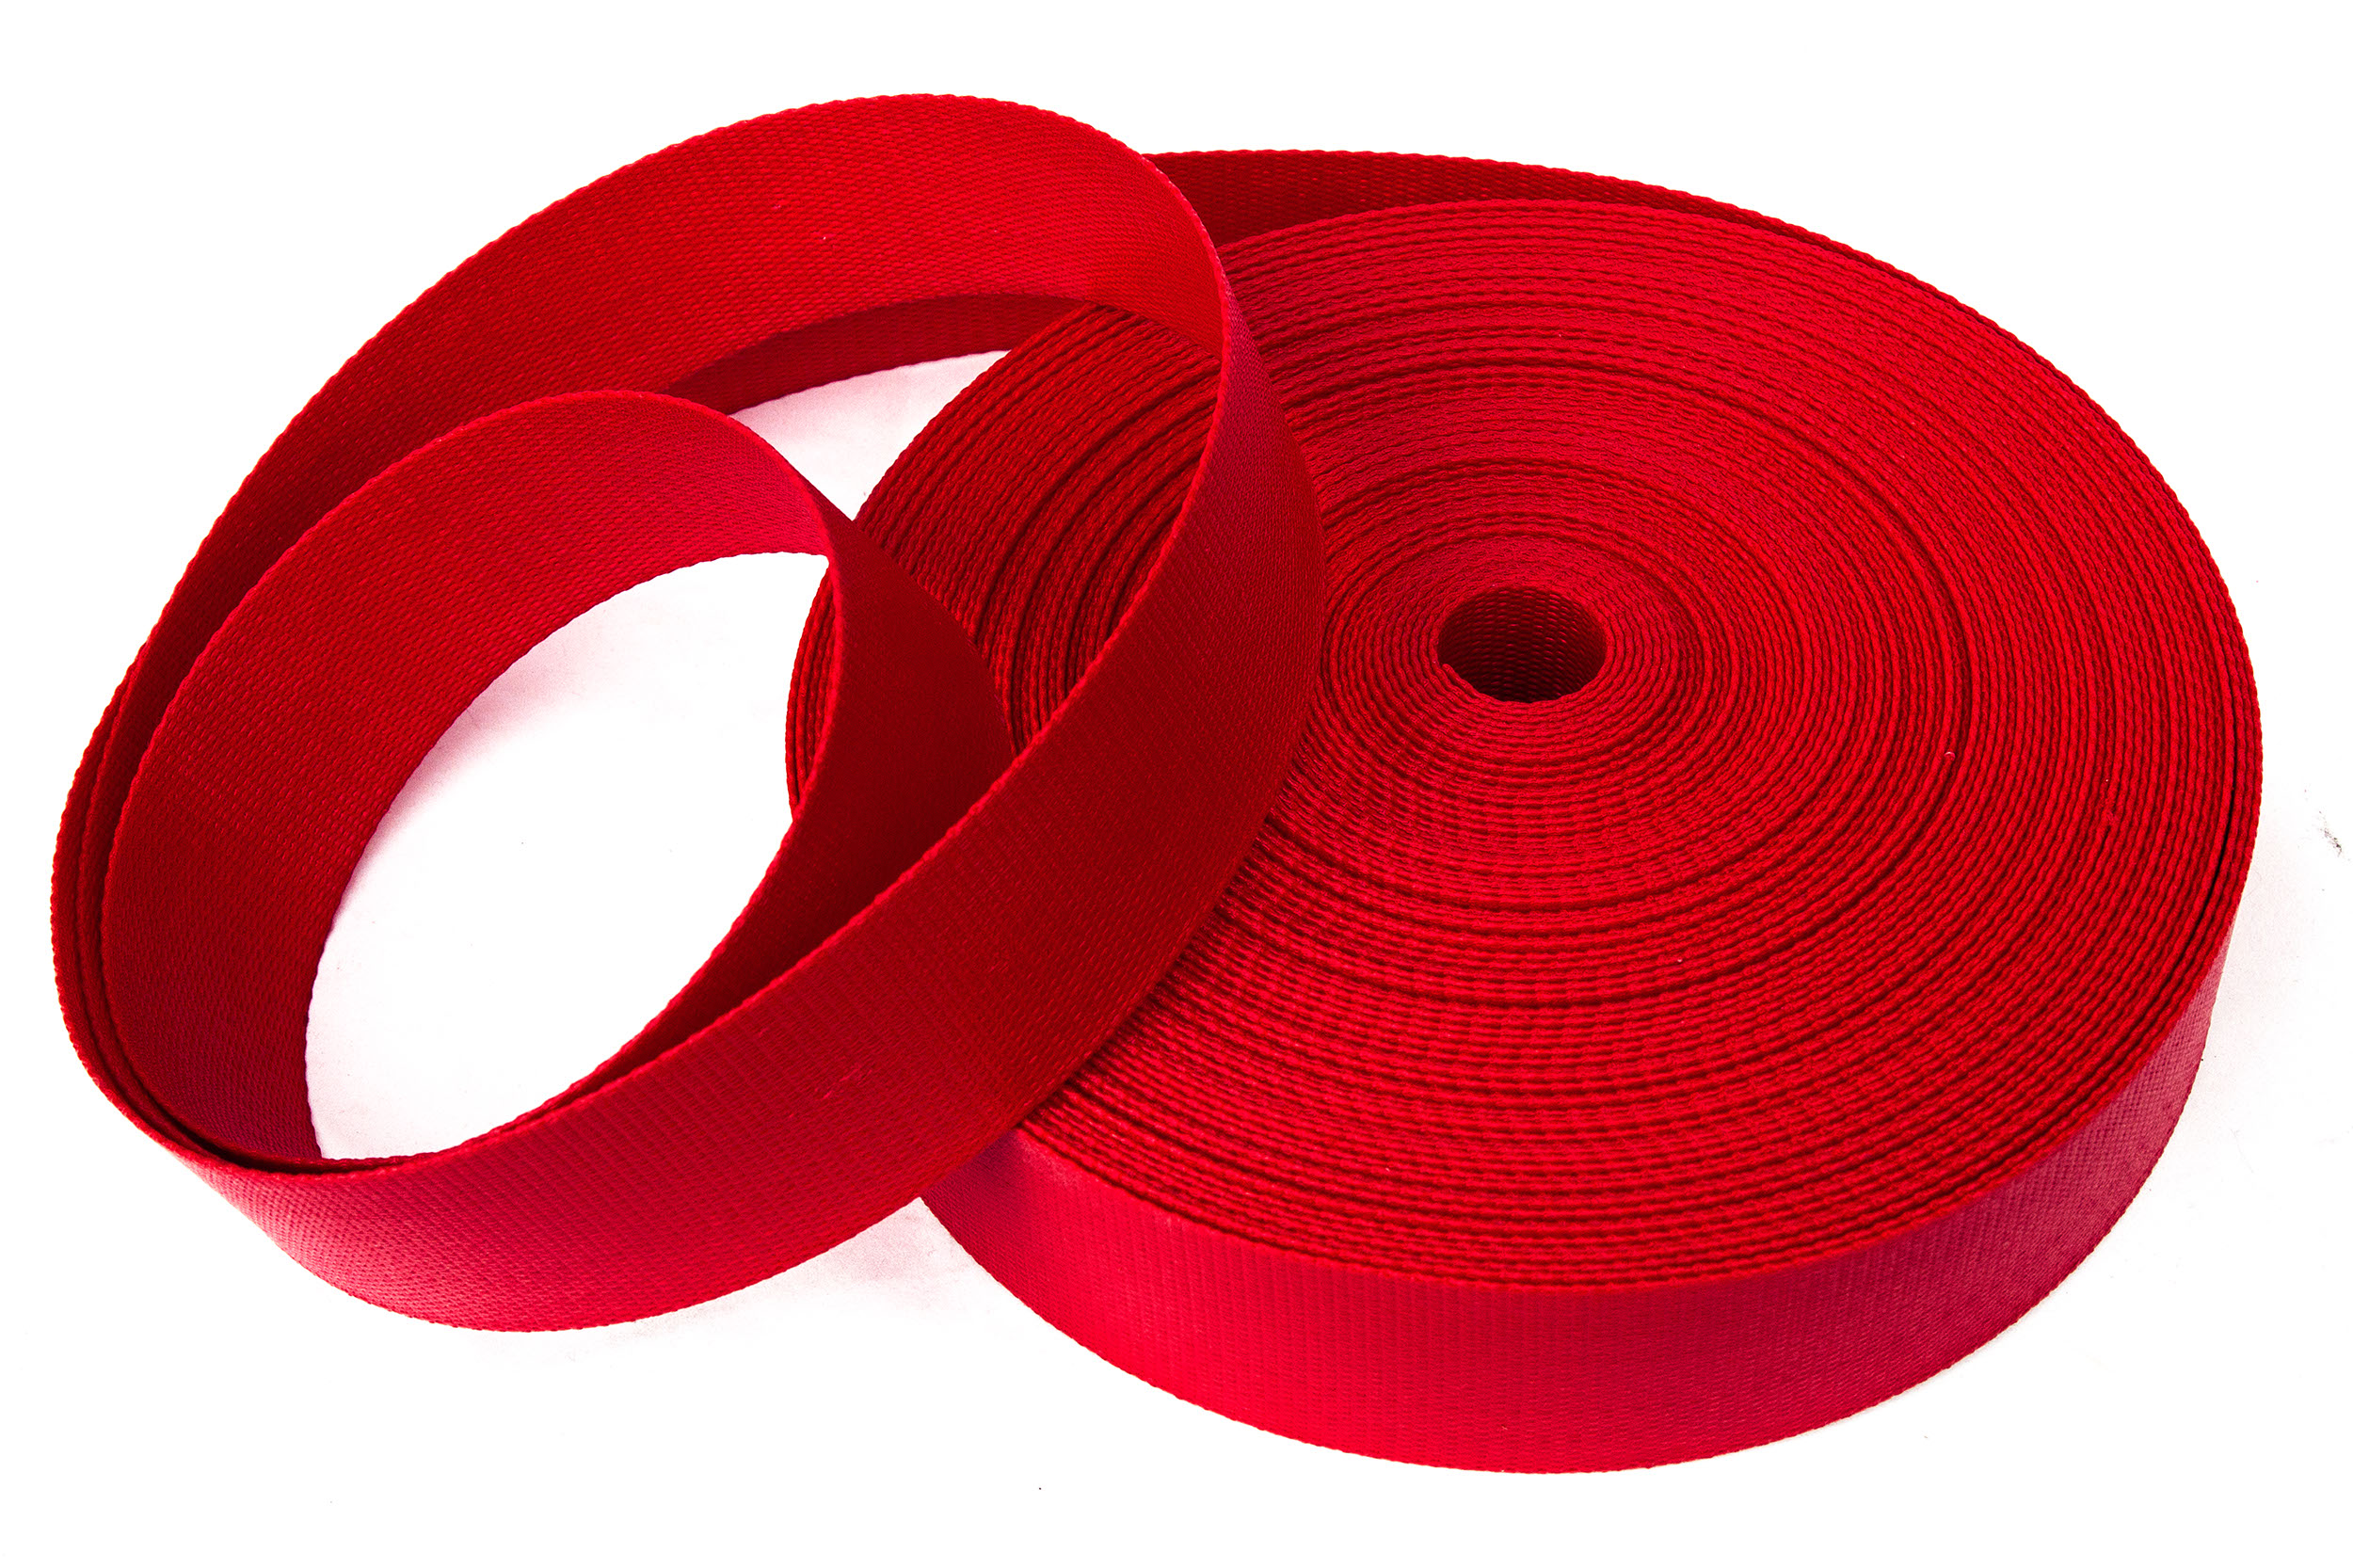 Weldable-Tape-Red-3.jpg